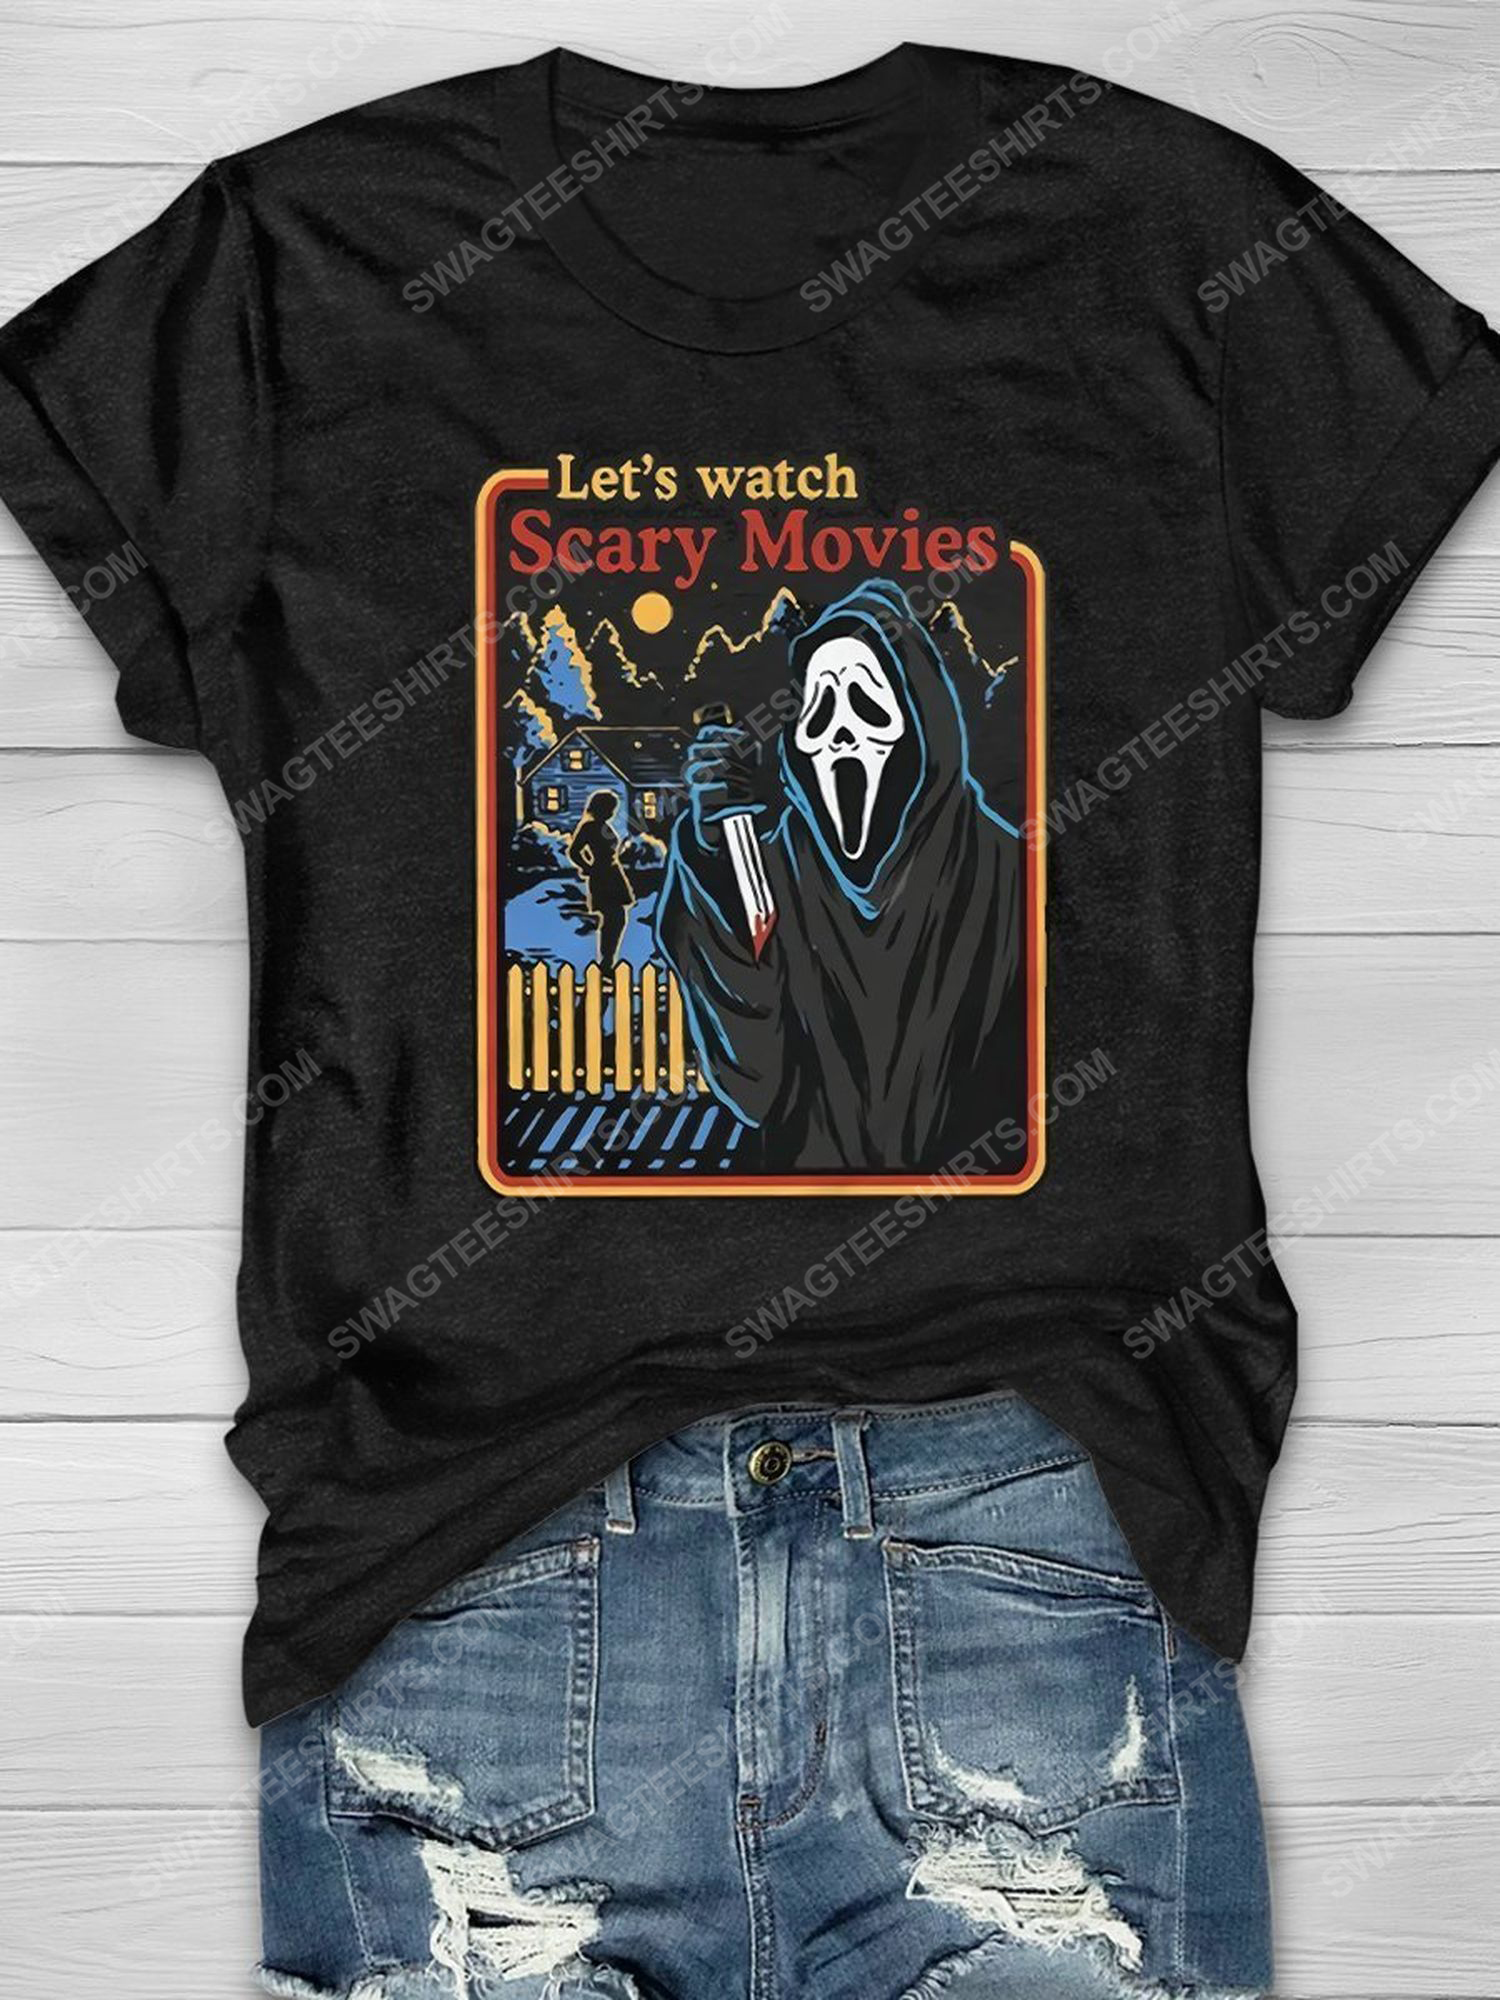 Halloween screaming movie let's watch scary movies shirt 1 - Copy (3)